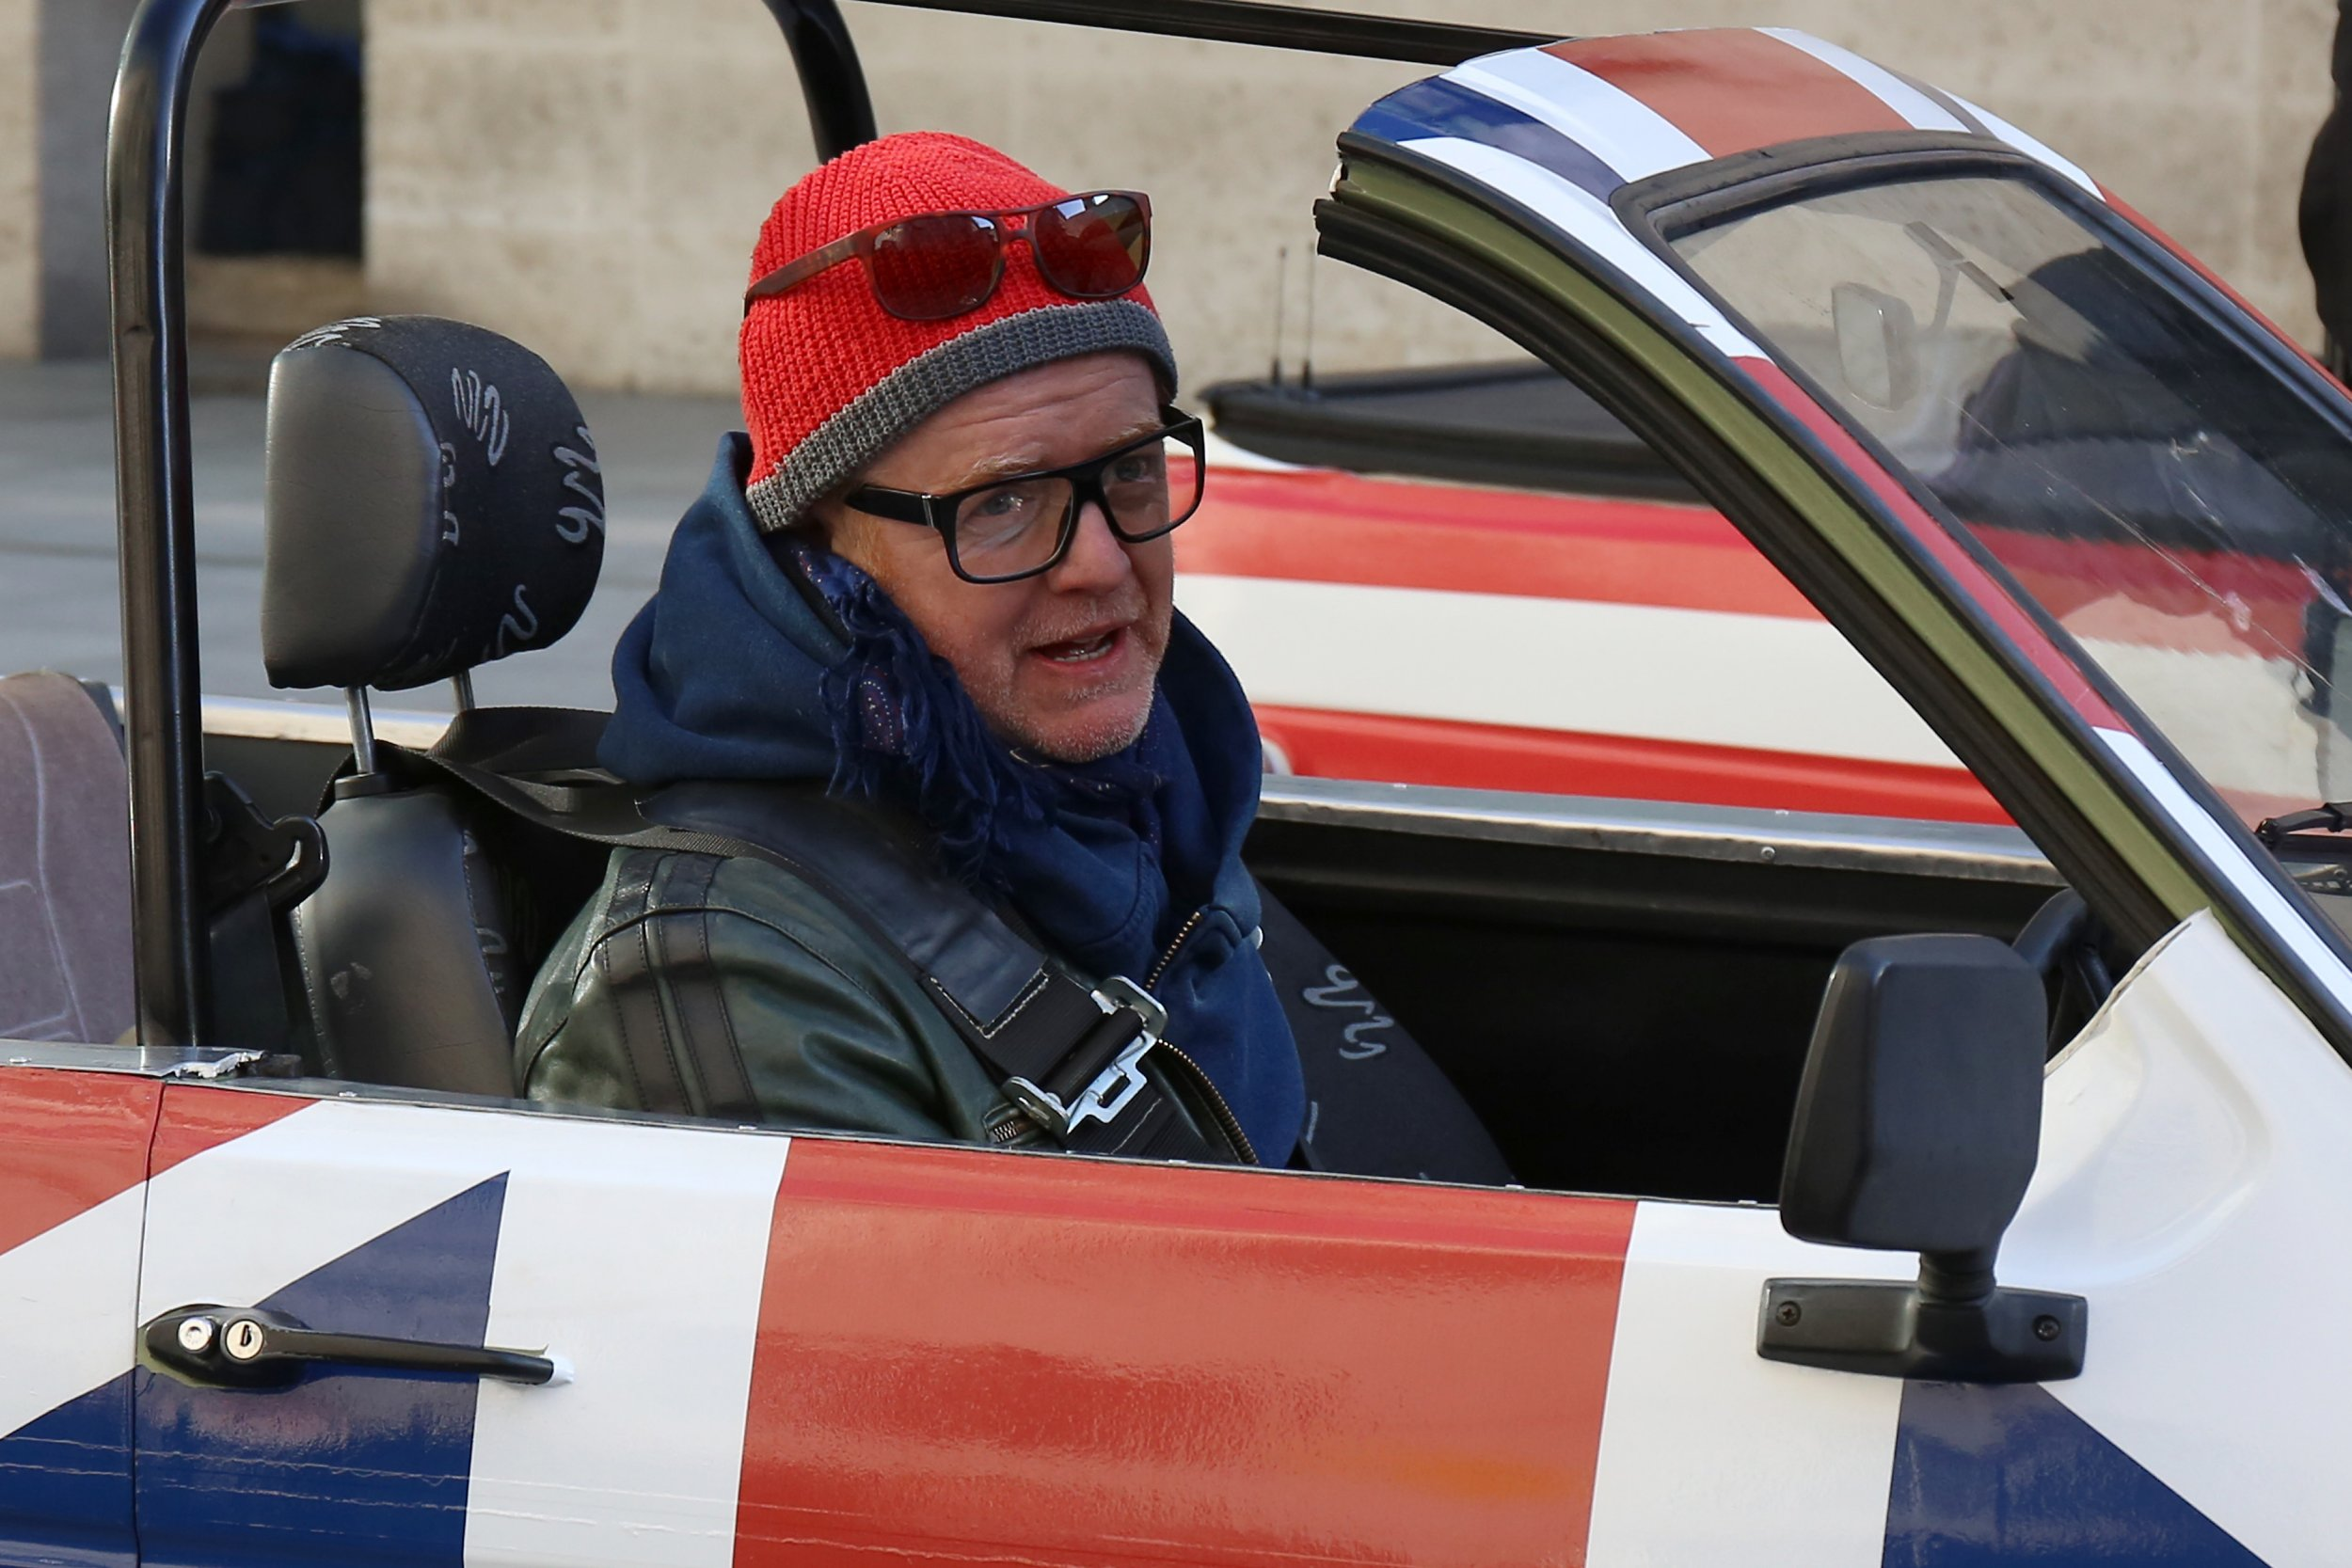 LONDON, ENGLAND - FEBRUARY 19: Chris Evans seen filming Top Gear outside BBC Broadcasting House on February 19, 2016 in London, England. (Photo by Neil Mockford/GC Images)